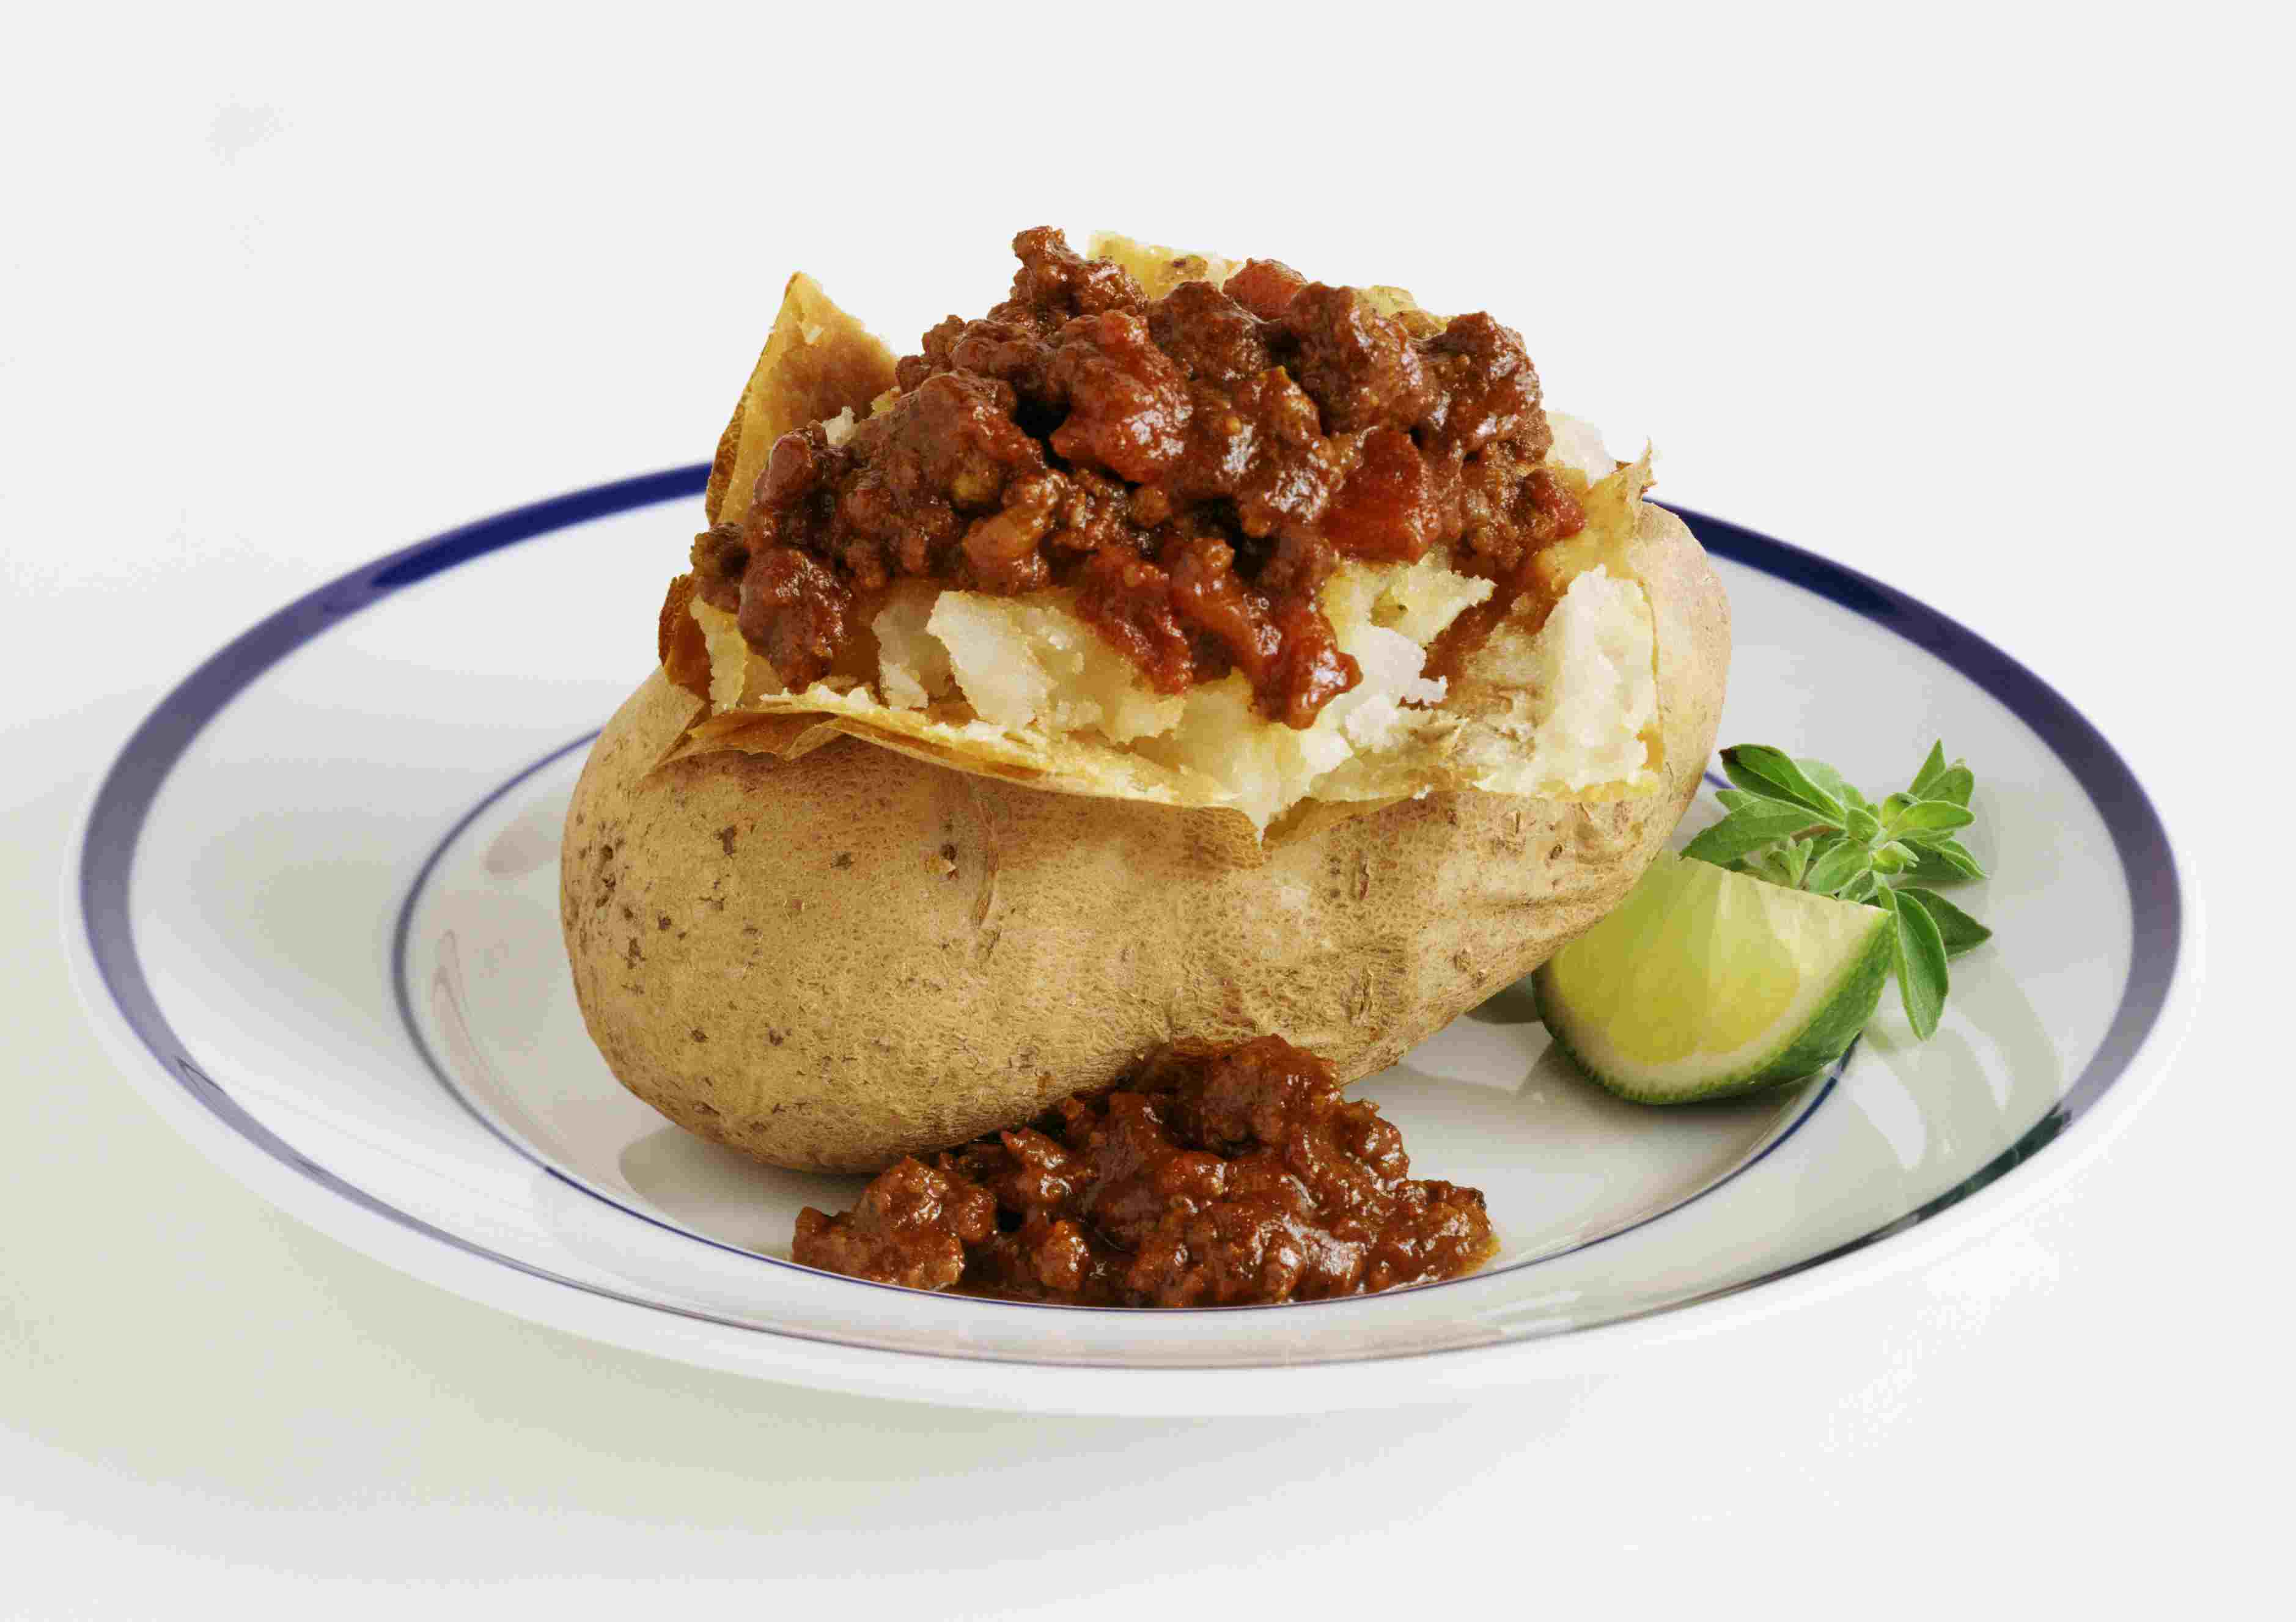 10 Delicious Ways To Serve Baked Potatoes